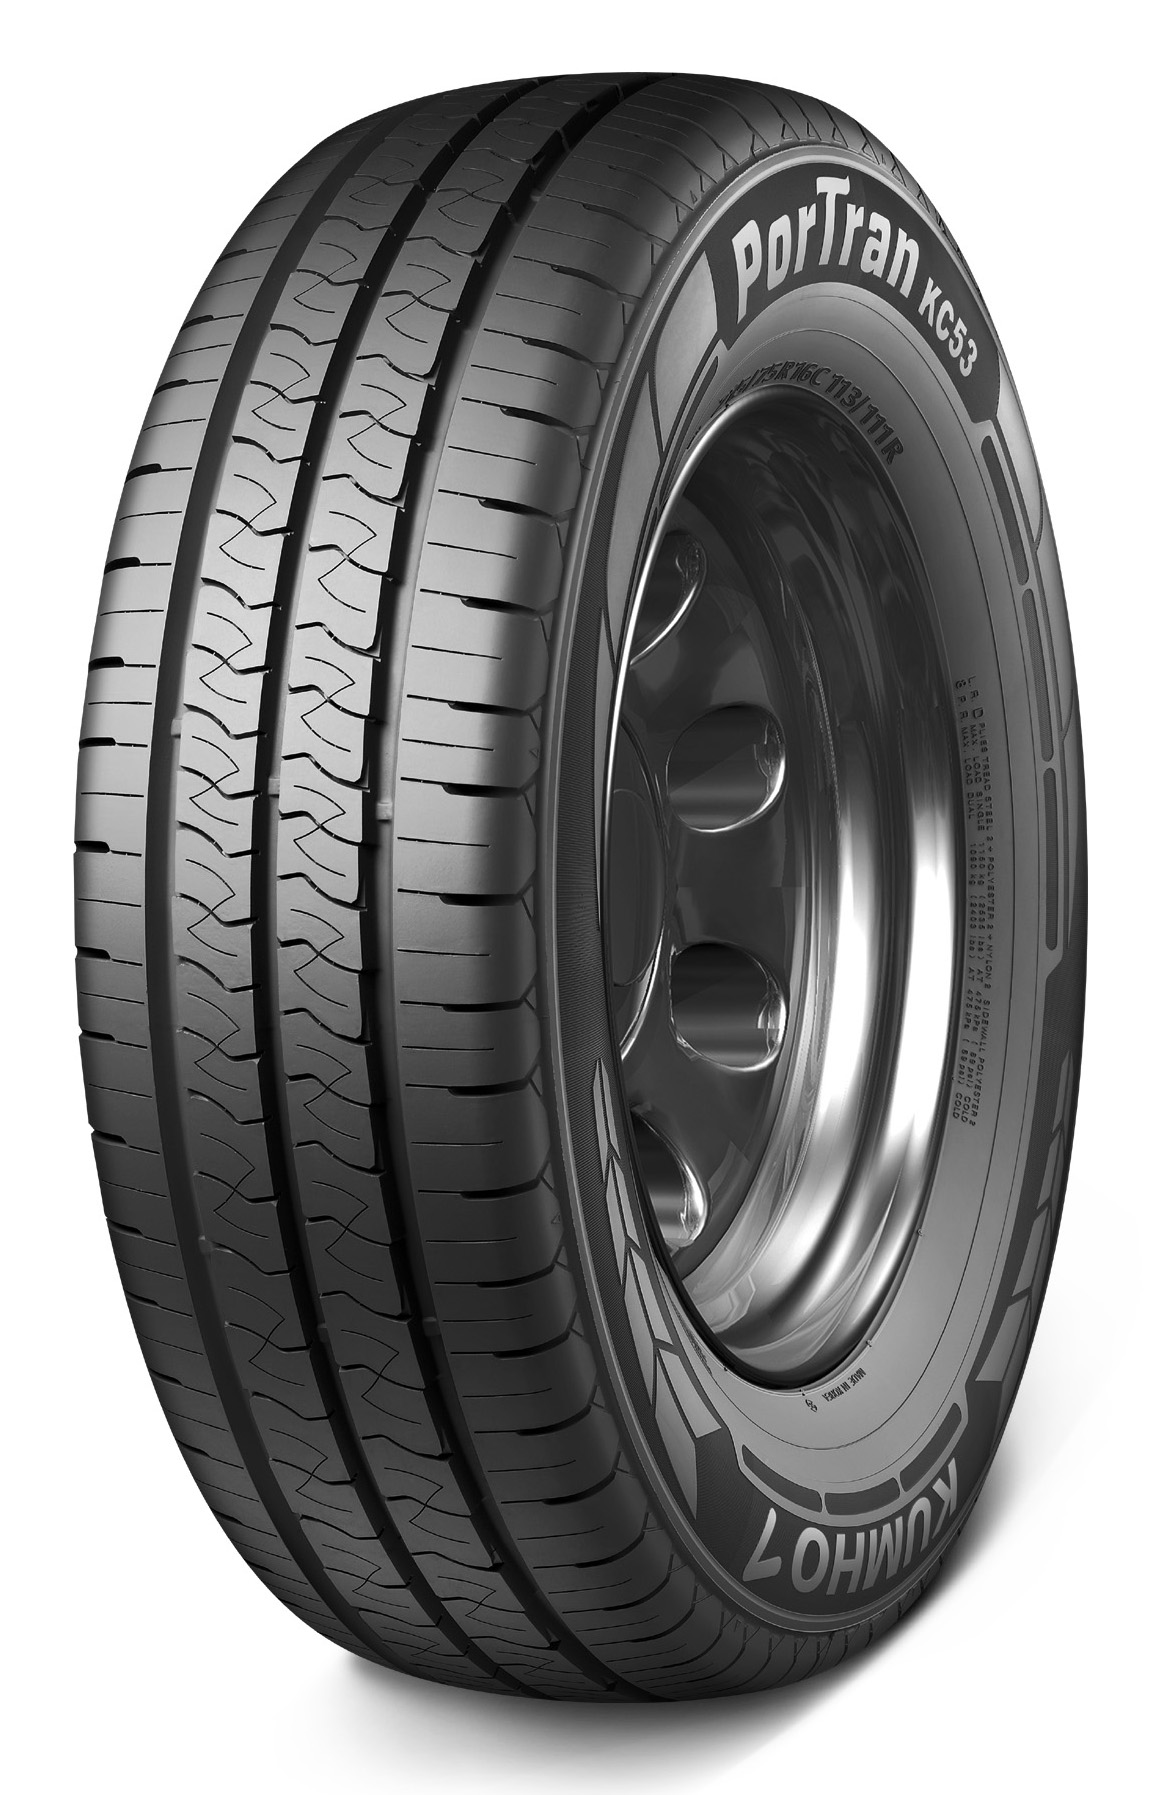 Latest LCV tyres from Kumho